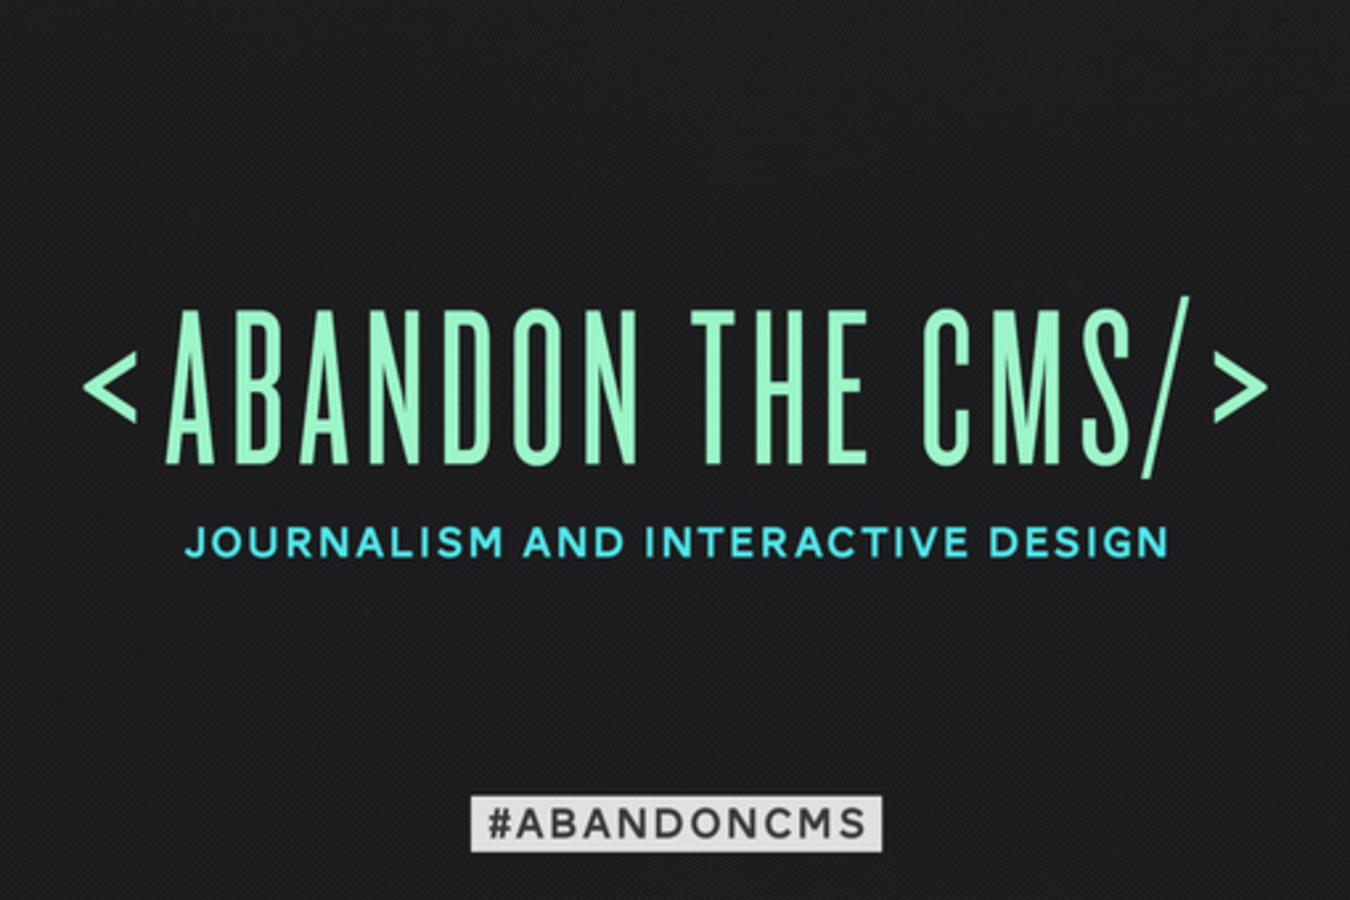 abandon the cms: journalism and interactive design | sxsw 2015 event